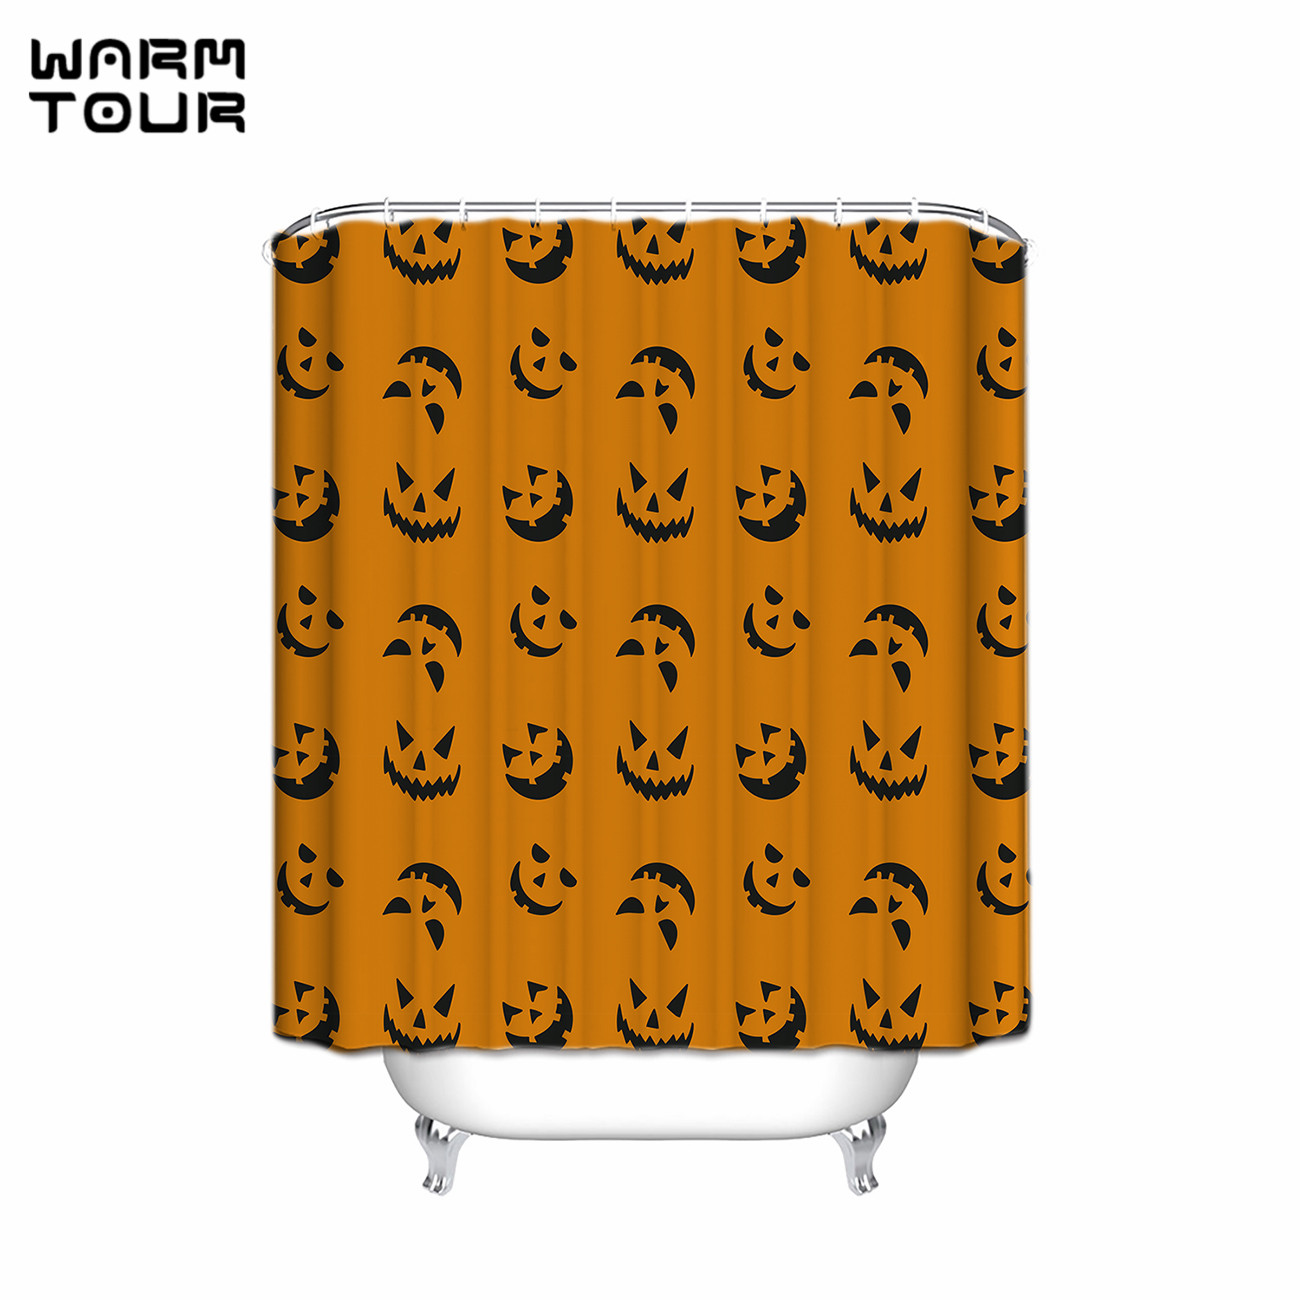 Halloween shower curtain hooks - Warm Tour New Waterproof Happy Halloween Shower Curtain High Quality Polyester Bathroom Curtain With Hooks Cortinas